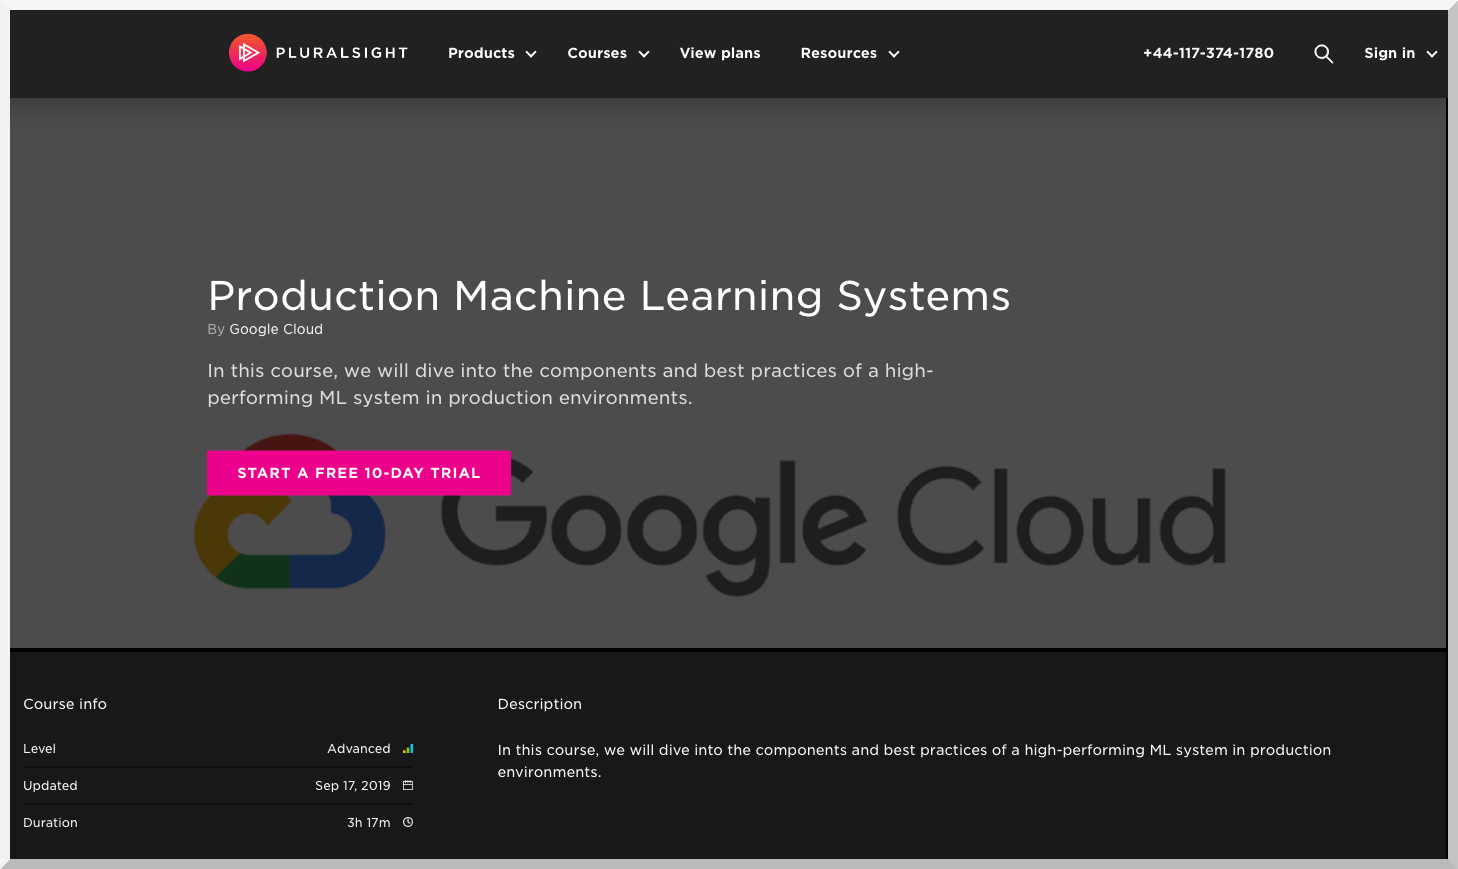 Production Machine Learning Systems – Google Cloud – Pluralsight